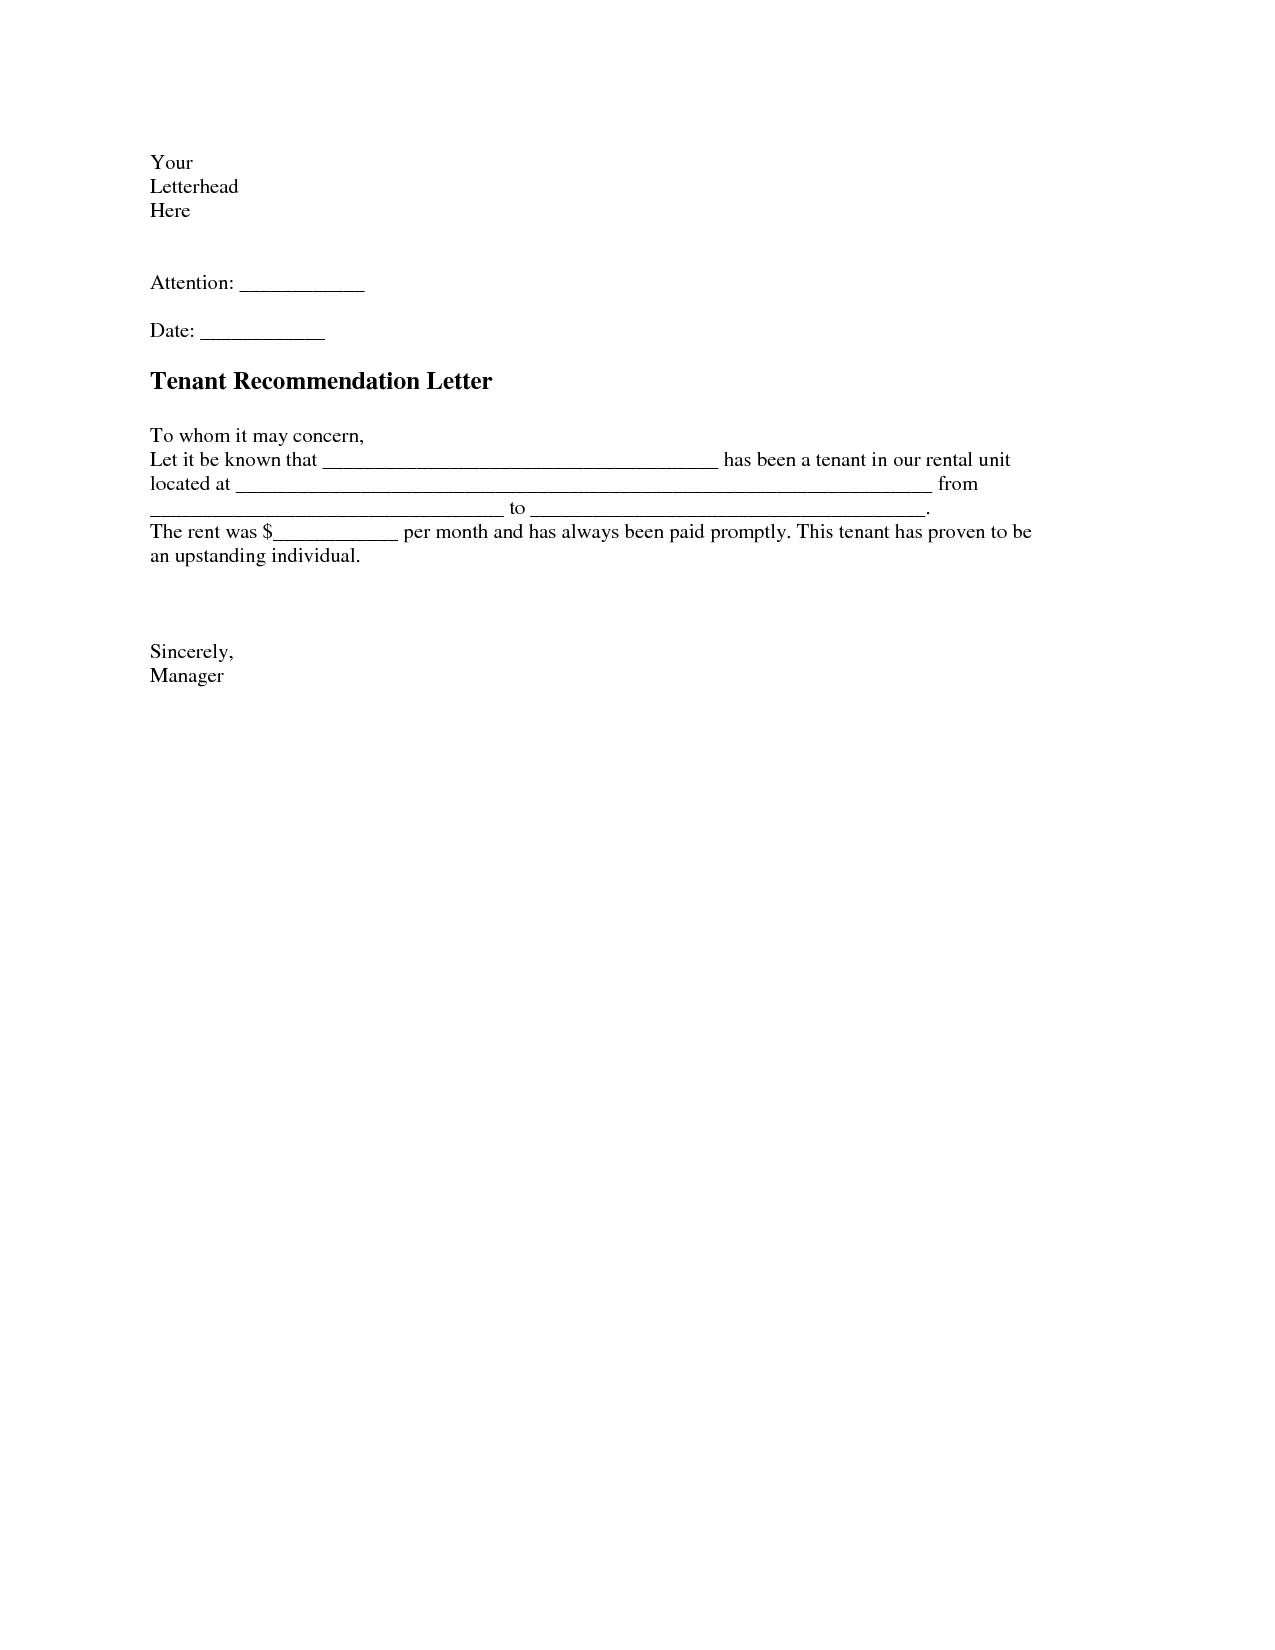 Landlord Reference Letter Template - Tenant Re Mendation Letter A Tenant Re Mendation Letter is